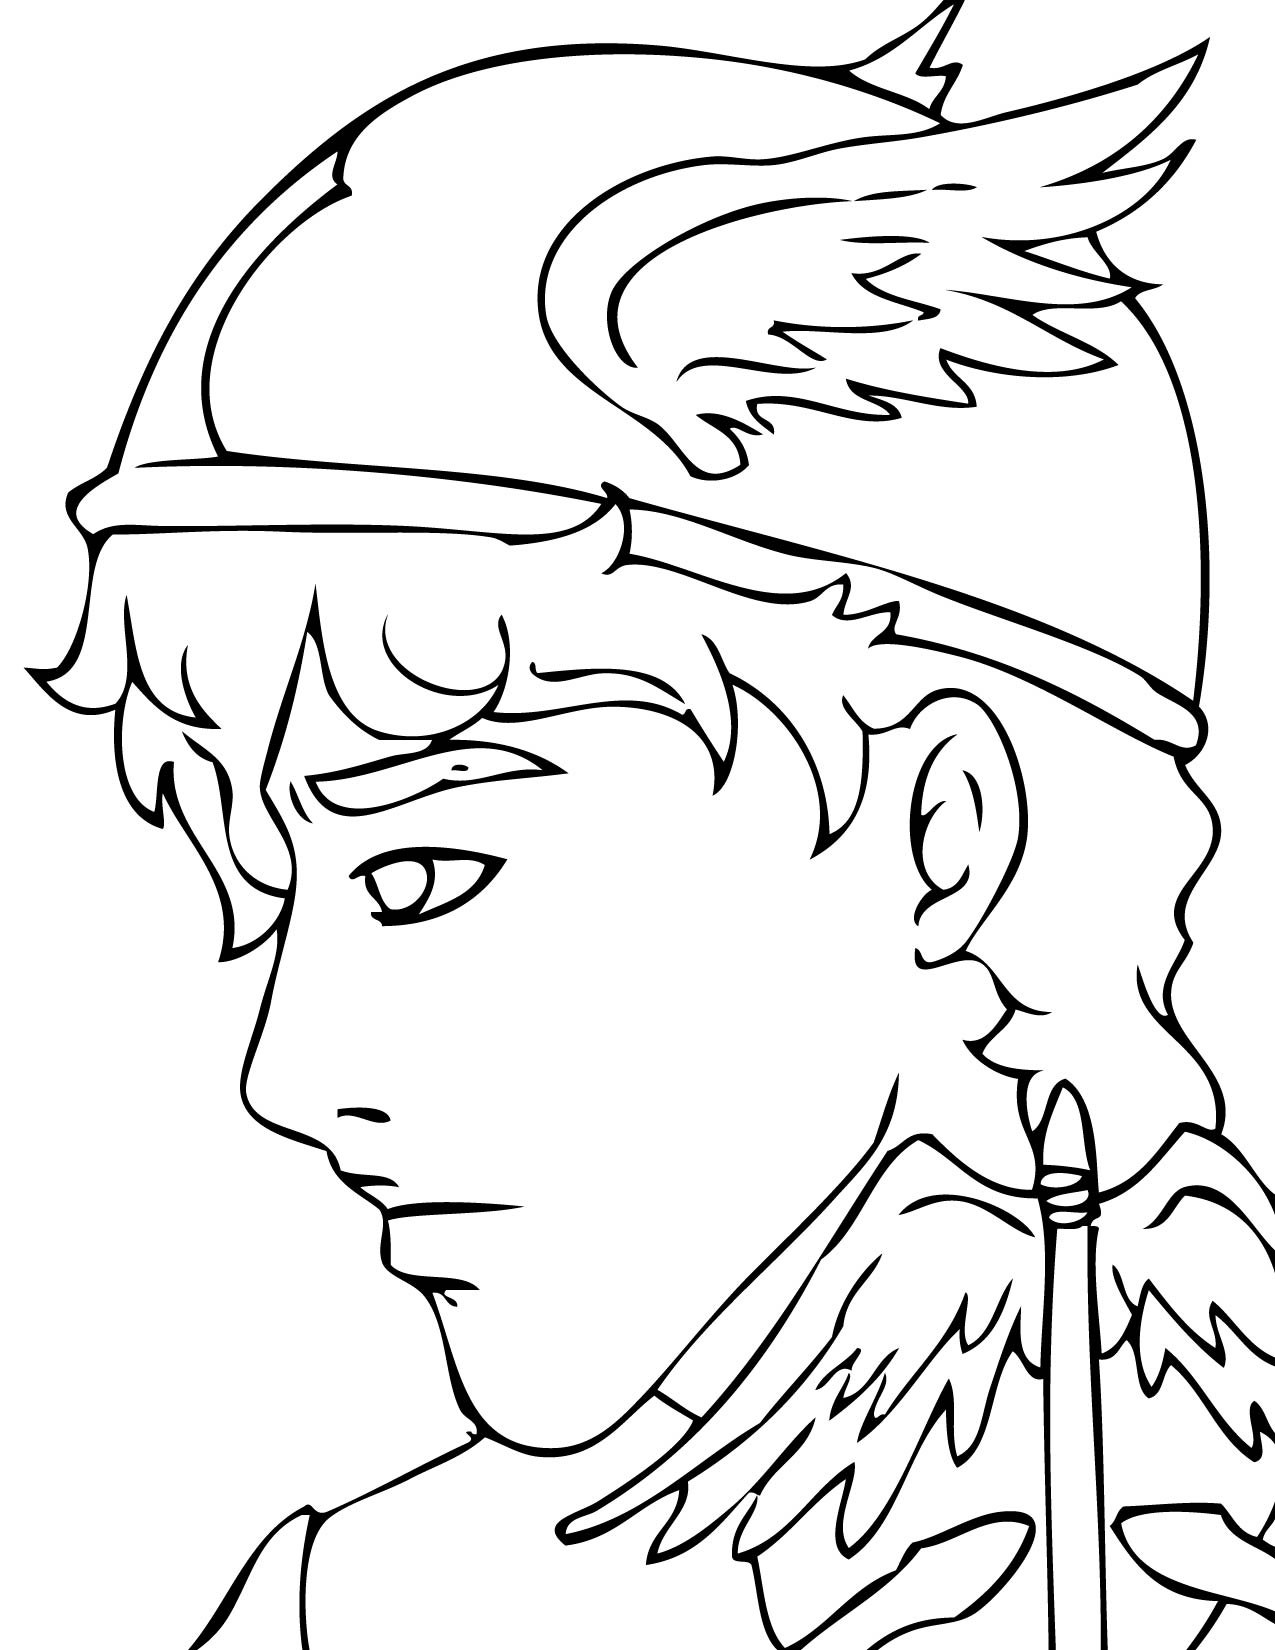 how to draw zeus face